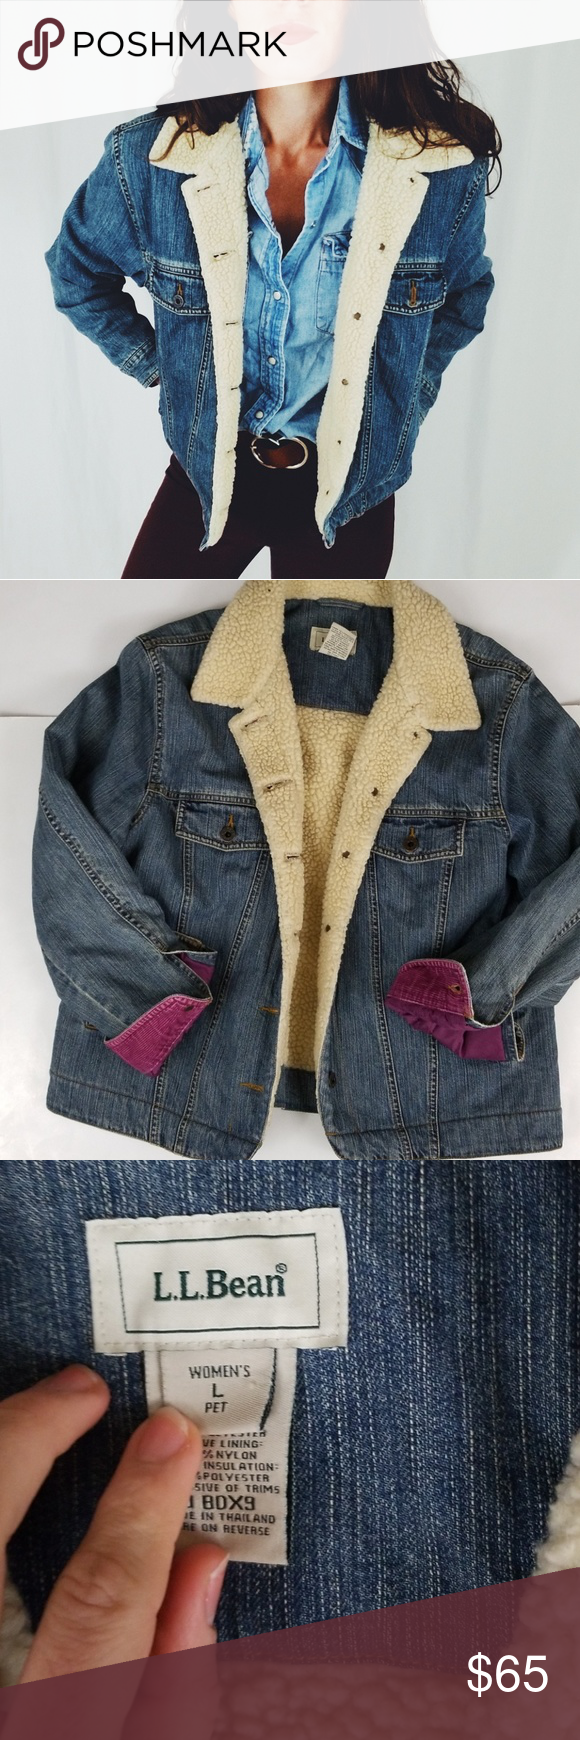 4ecffd54e6 L.L. Bean sherpa lined denim jacket -D4 L.L. bean denim jacket lined in a  cozy sherpa material. Womens size large. Purple corduroy detail on sleeve  cuff and ...